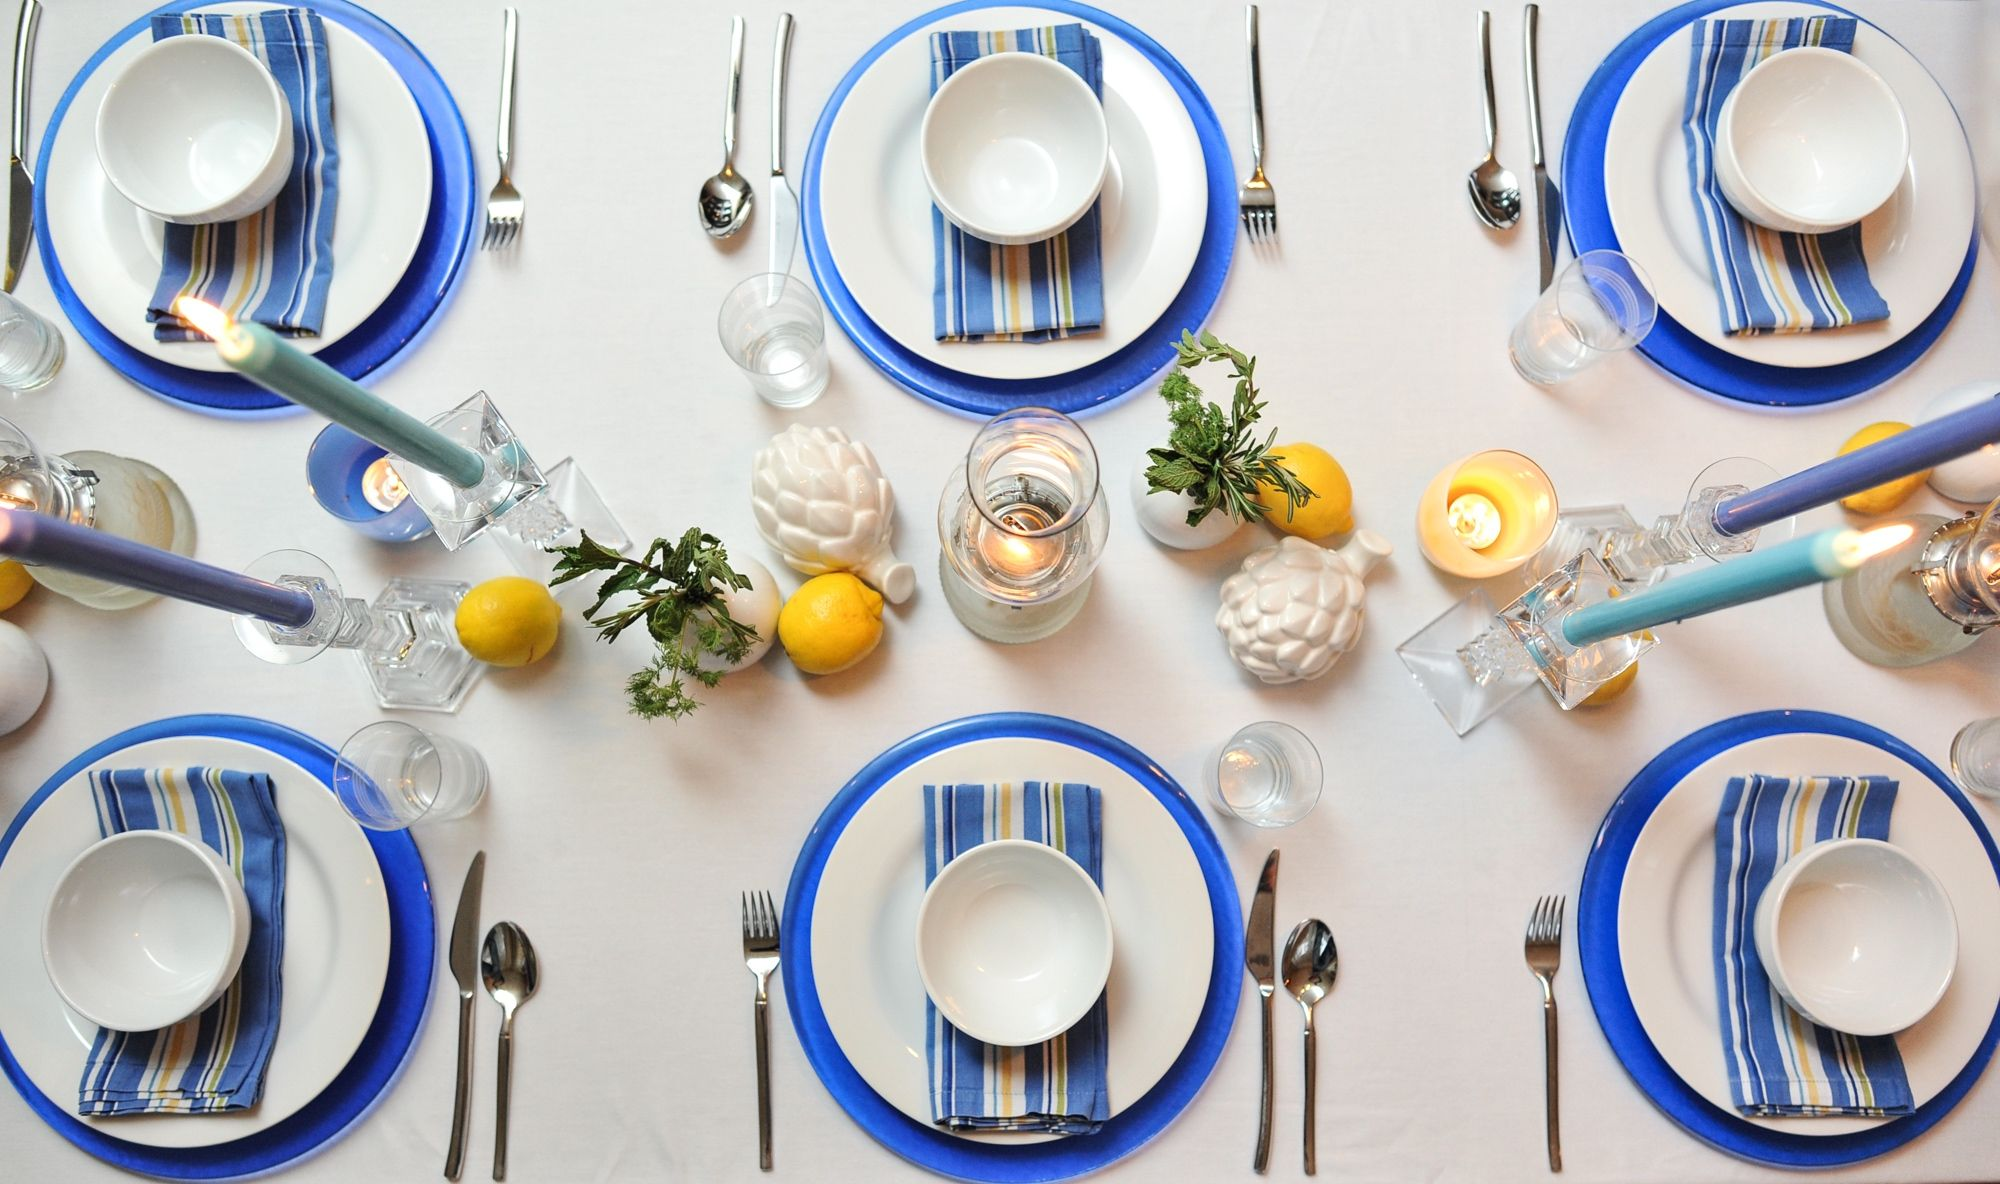 Greek Table setting  sc 1 st  Pinterest & Greek Table setting | Play | Pinterest | Greek Blue tablecloth and ...